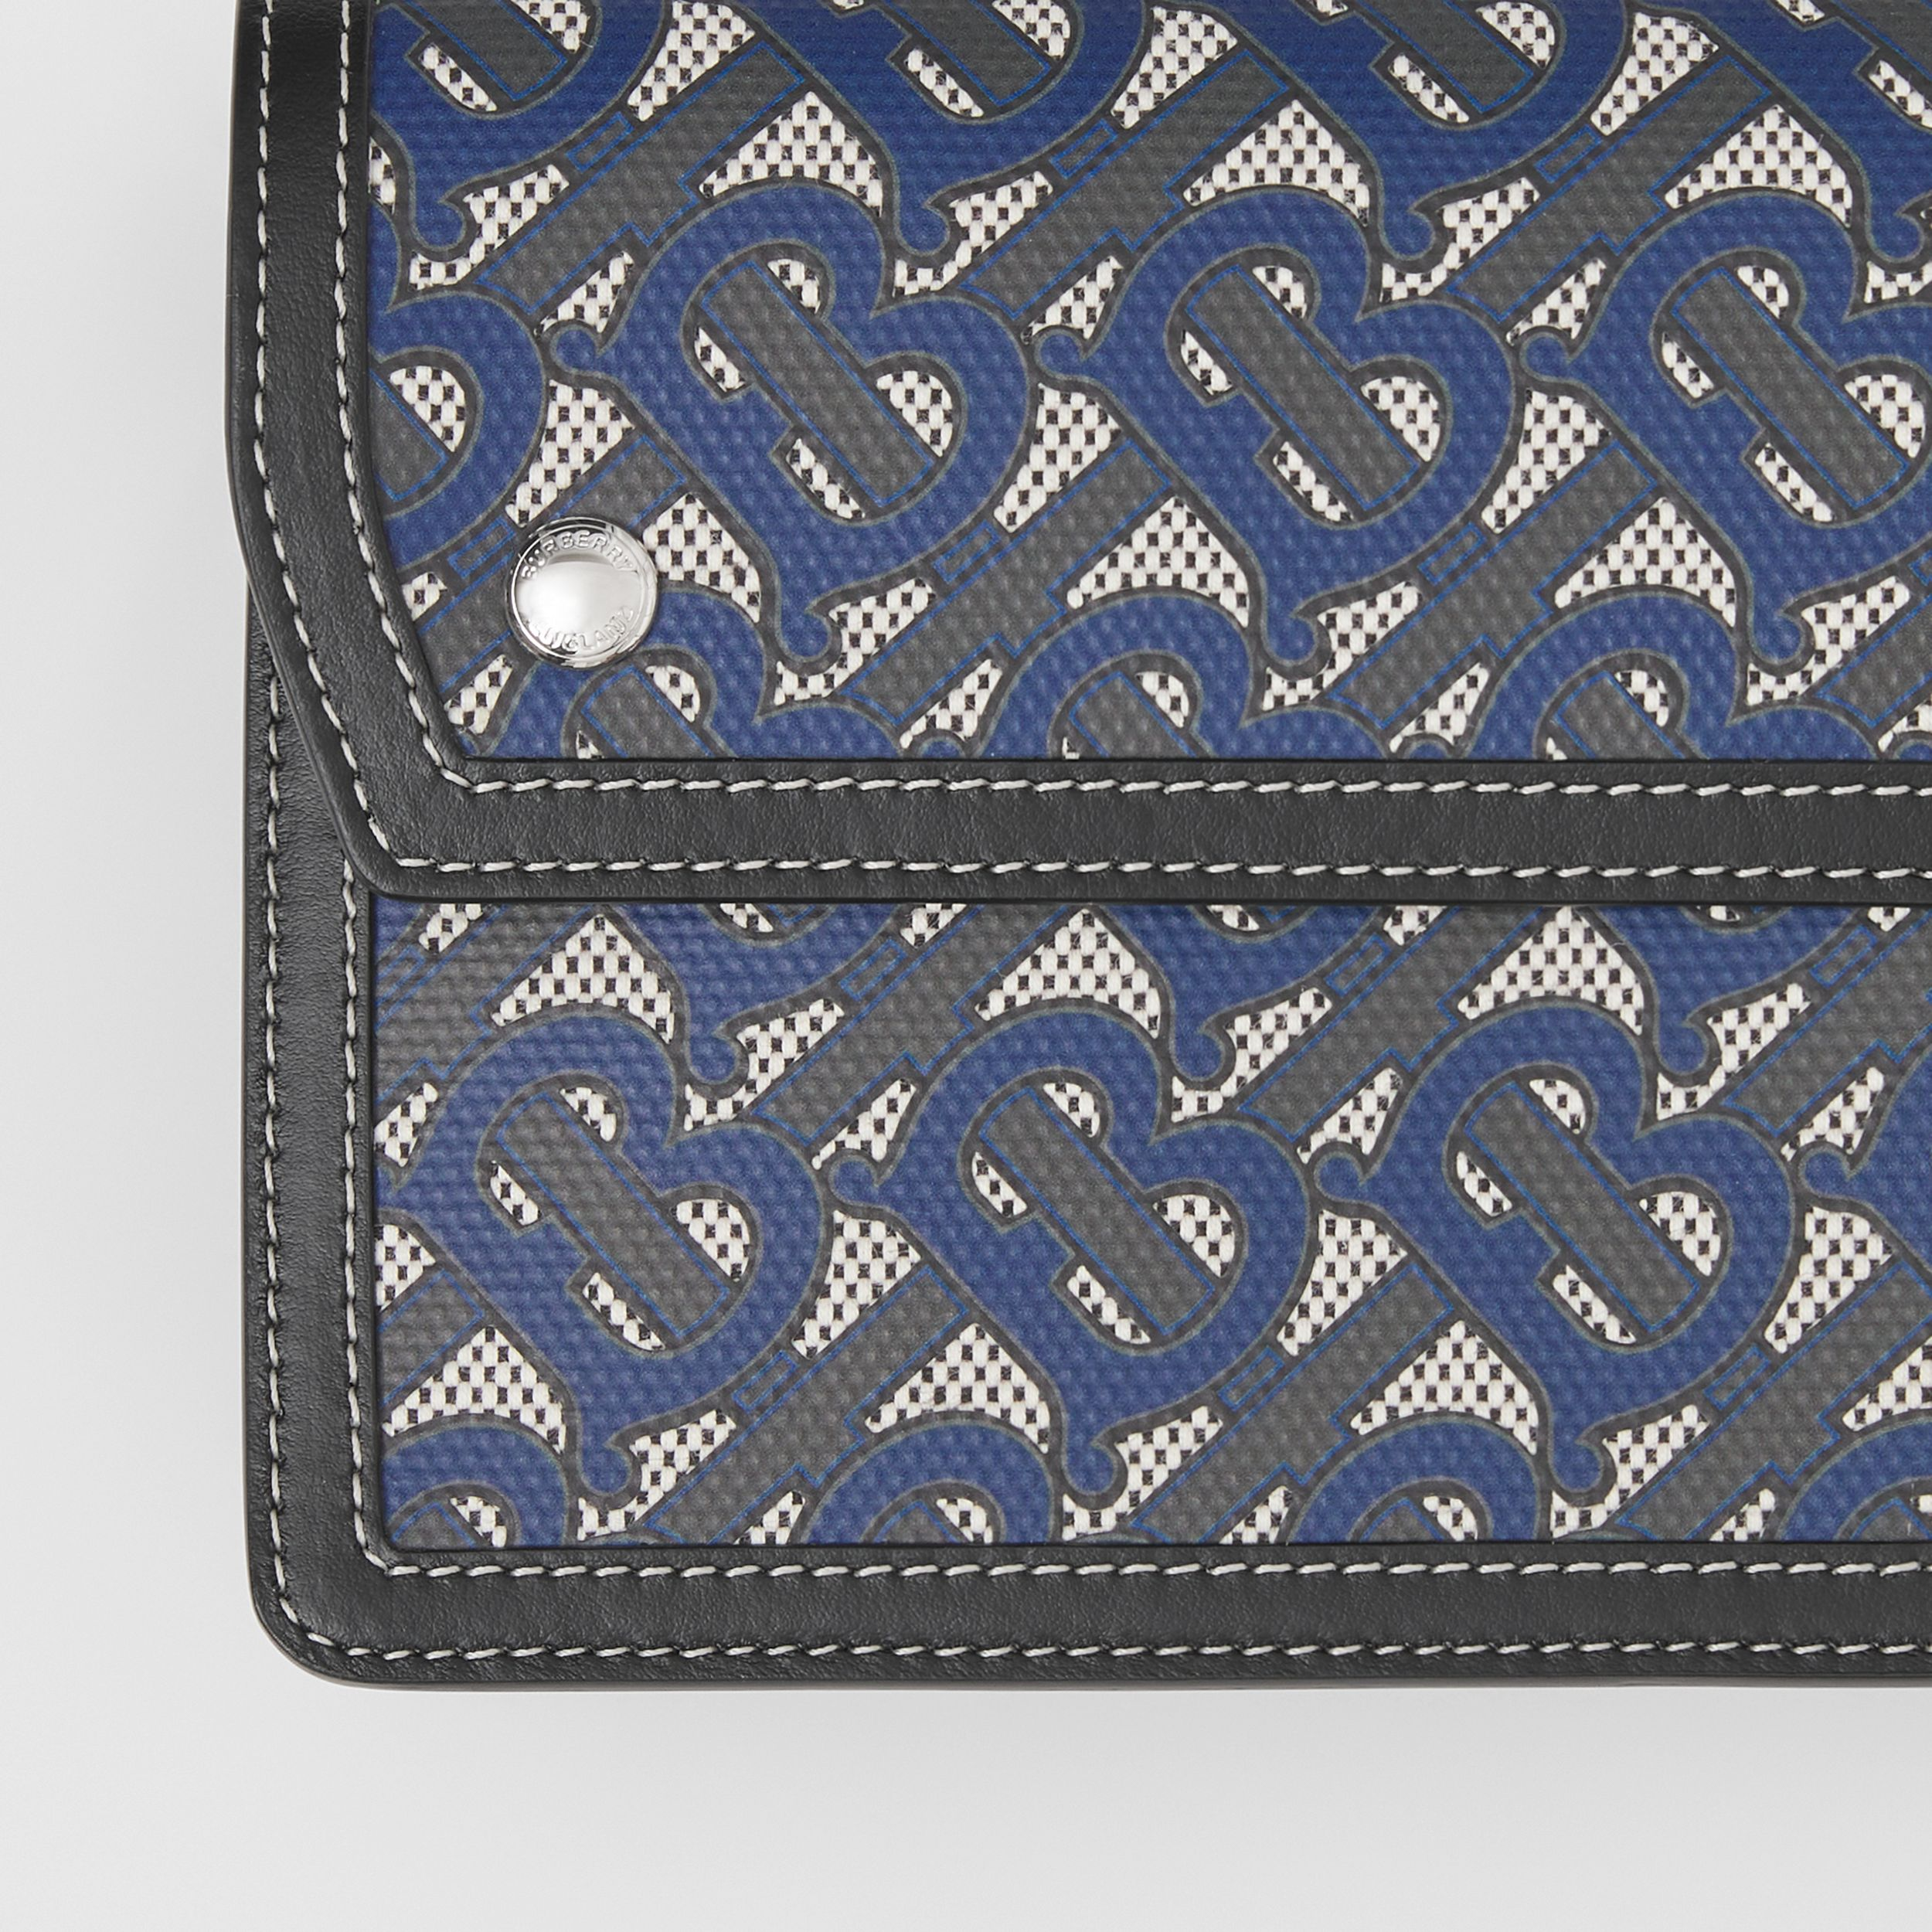 Monogram Print Canvas and Leather Crossbody Bag in Ink Blue - Men | Burberry - 2